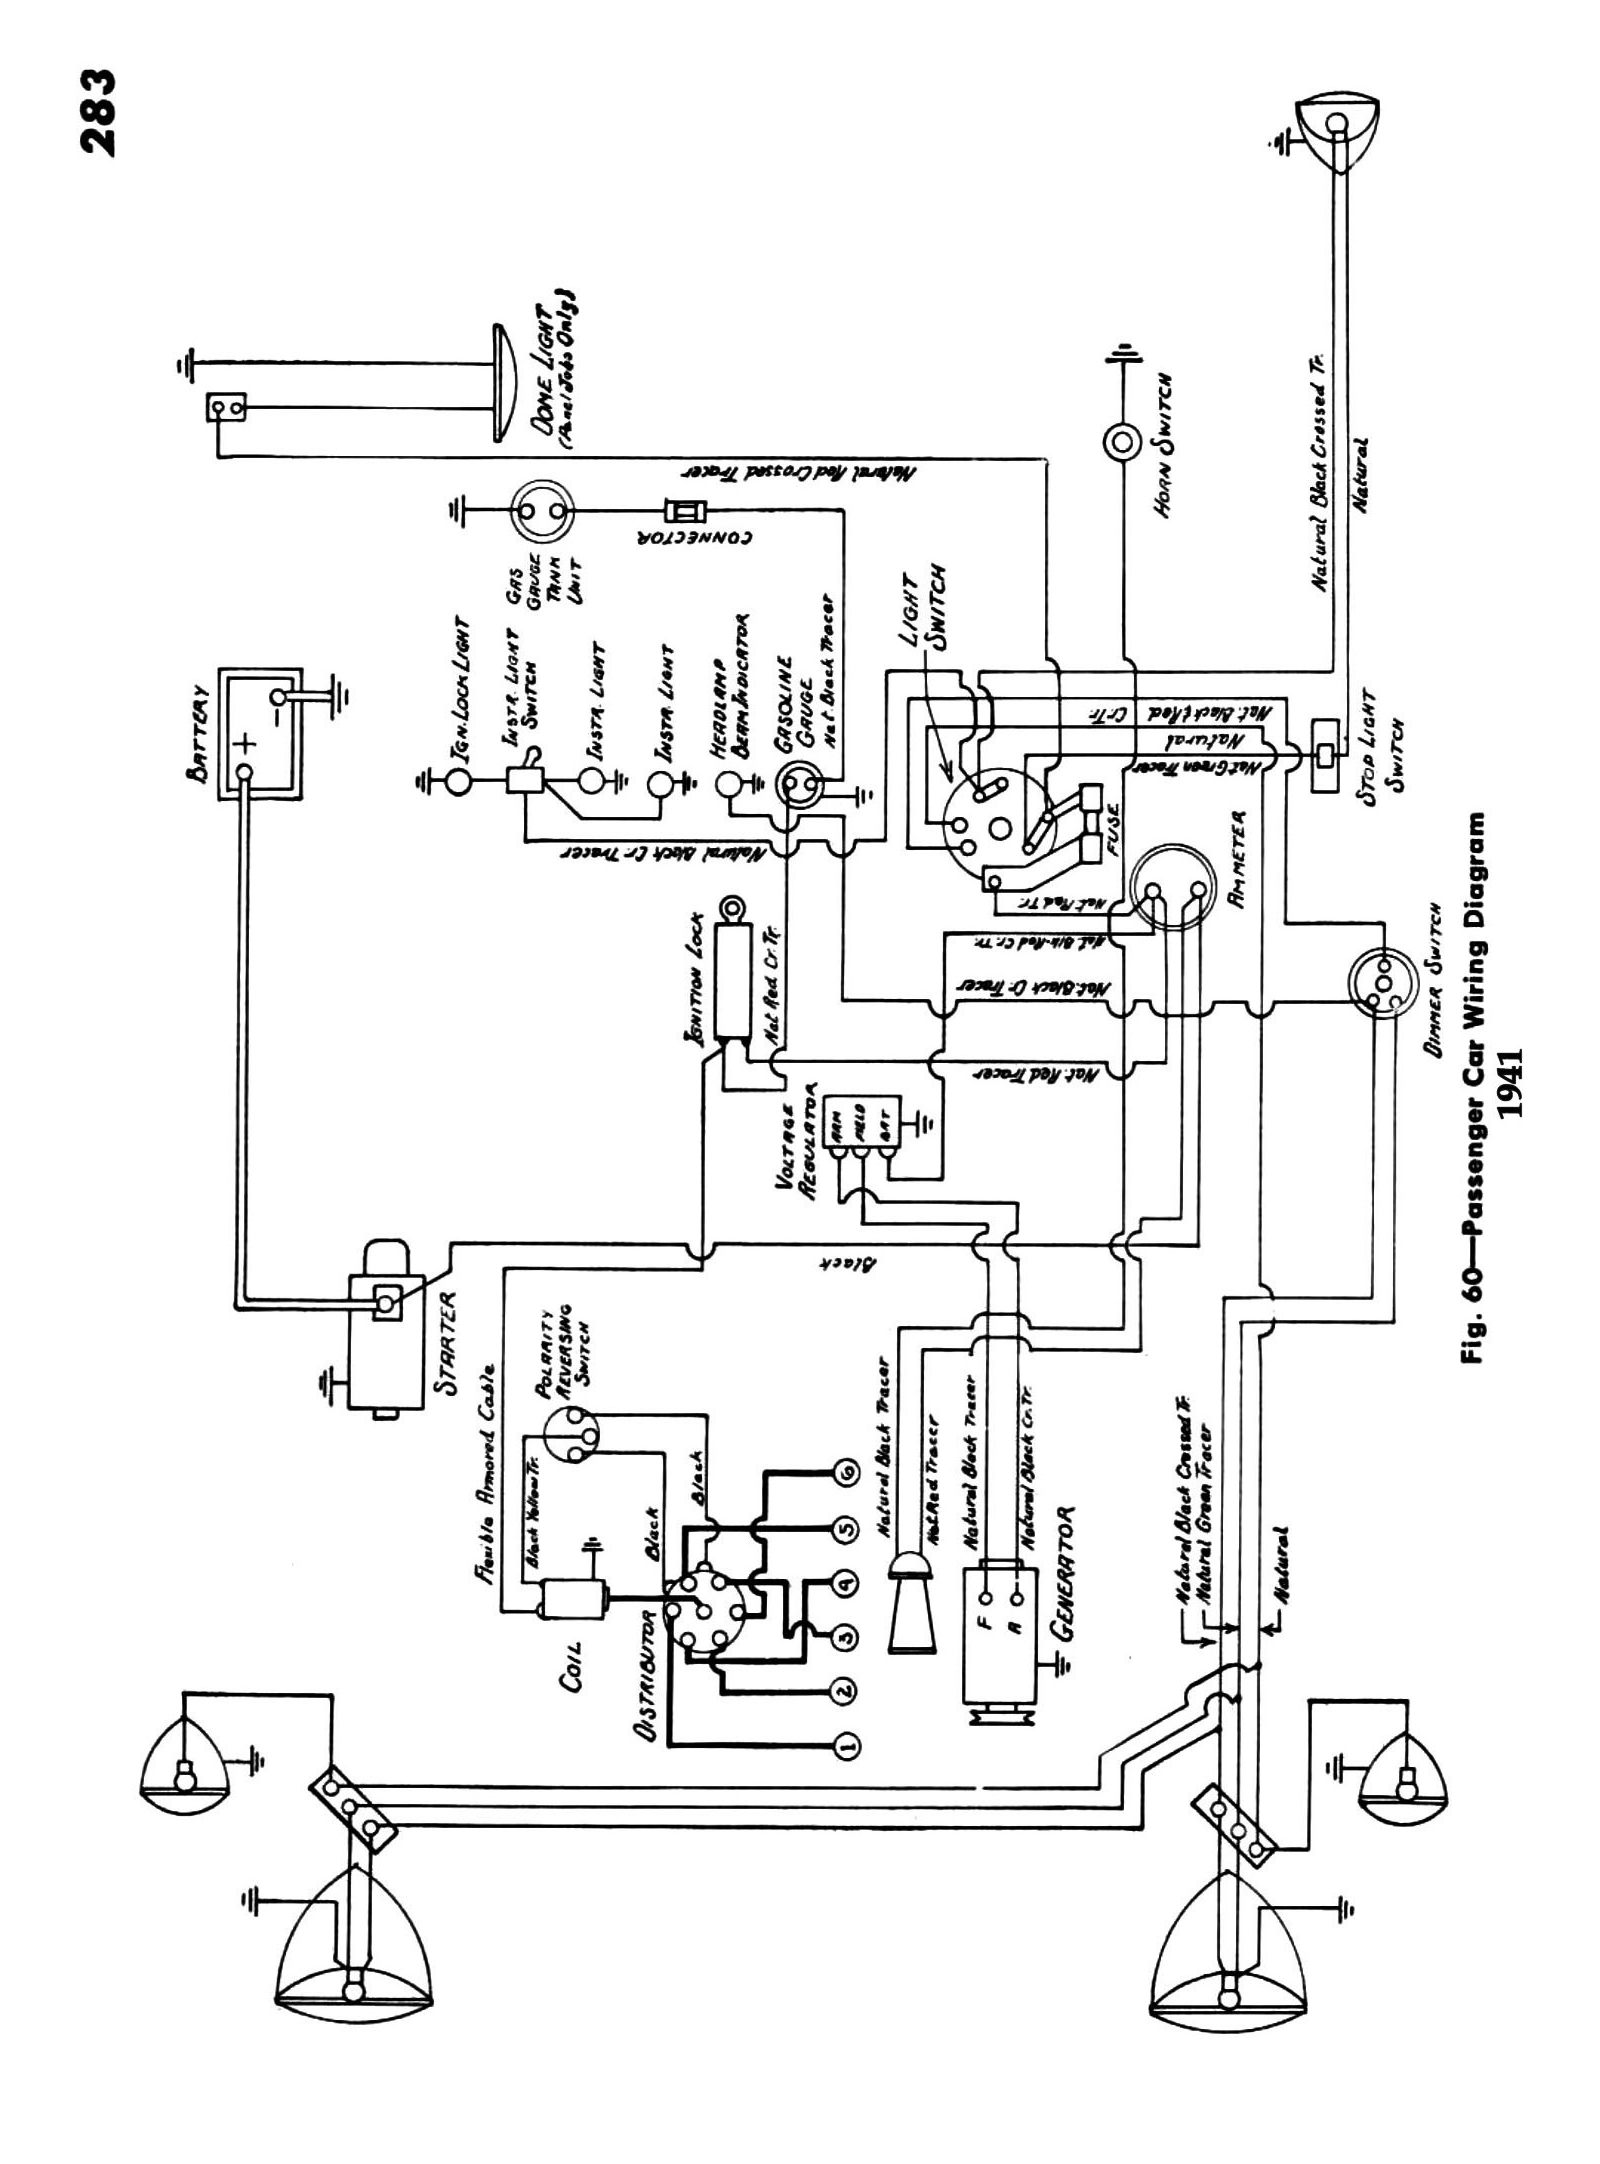 1997 Jeep Grand Cherokee Power Window Wiring Diagram further 1526730 Can Someone Send Me C  pressor Control Wiring Diagram 2012 Express Van in addition Discussion C8009 ds634136 together with 9097CH08 Power Rack and Pinion Steering moreover Bose Car Stereo Wiring Diagram. on mazda 3 radio wiring diagram